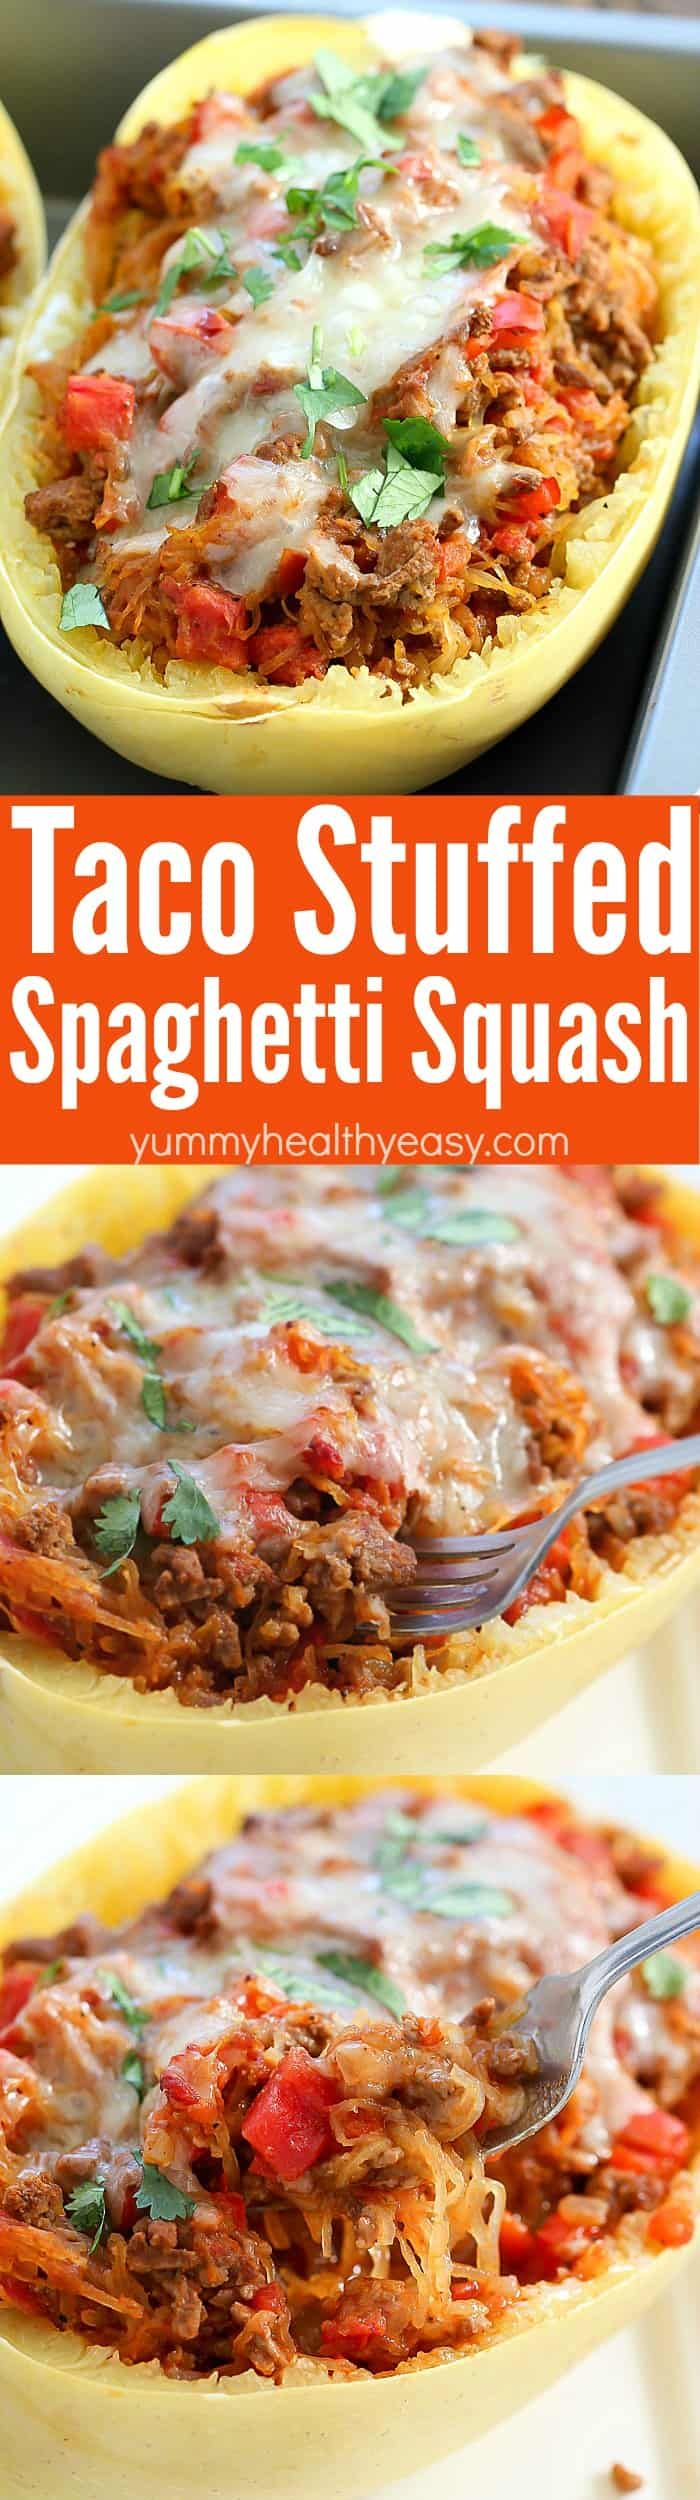 Love tacos but hate the carbs? Satisfy your taco craving the lower carb way with this Taco Stuffed Spaghetti Squash! All the yumminess of tacos mixed with spaghetti squash for a filling, low carb dinner the whole family will love! #easydinner #dinnerrecipes #tacotuesday